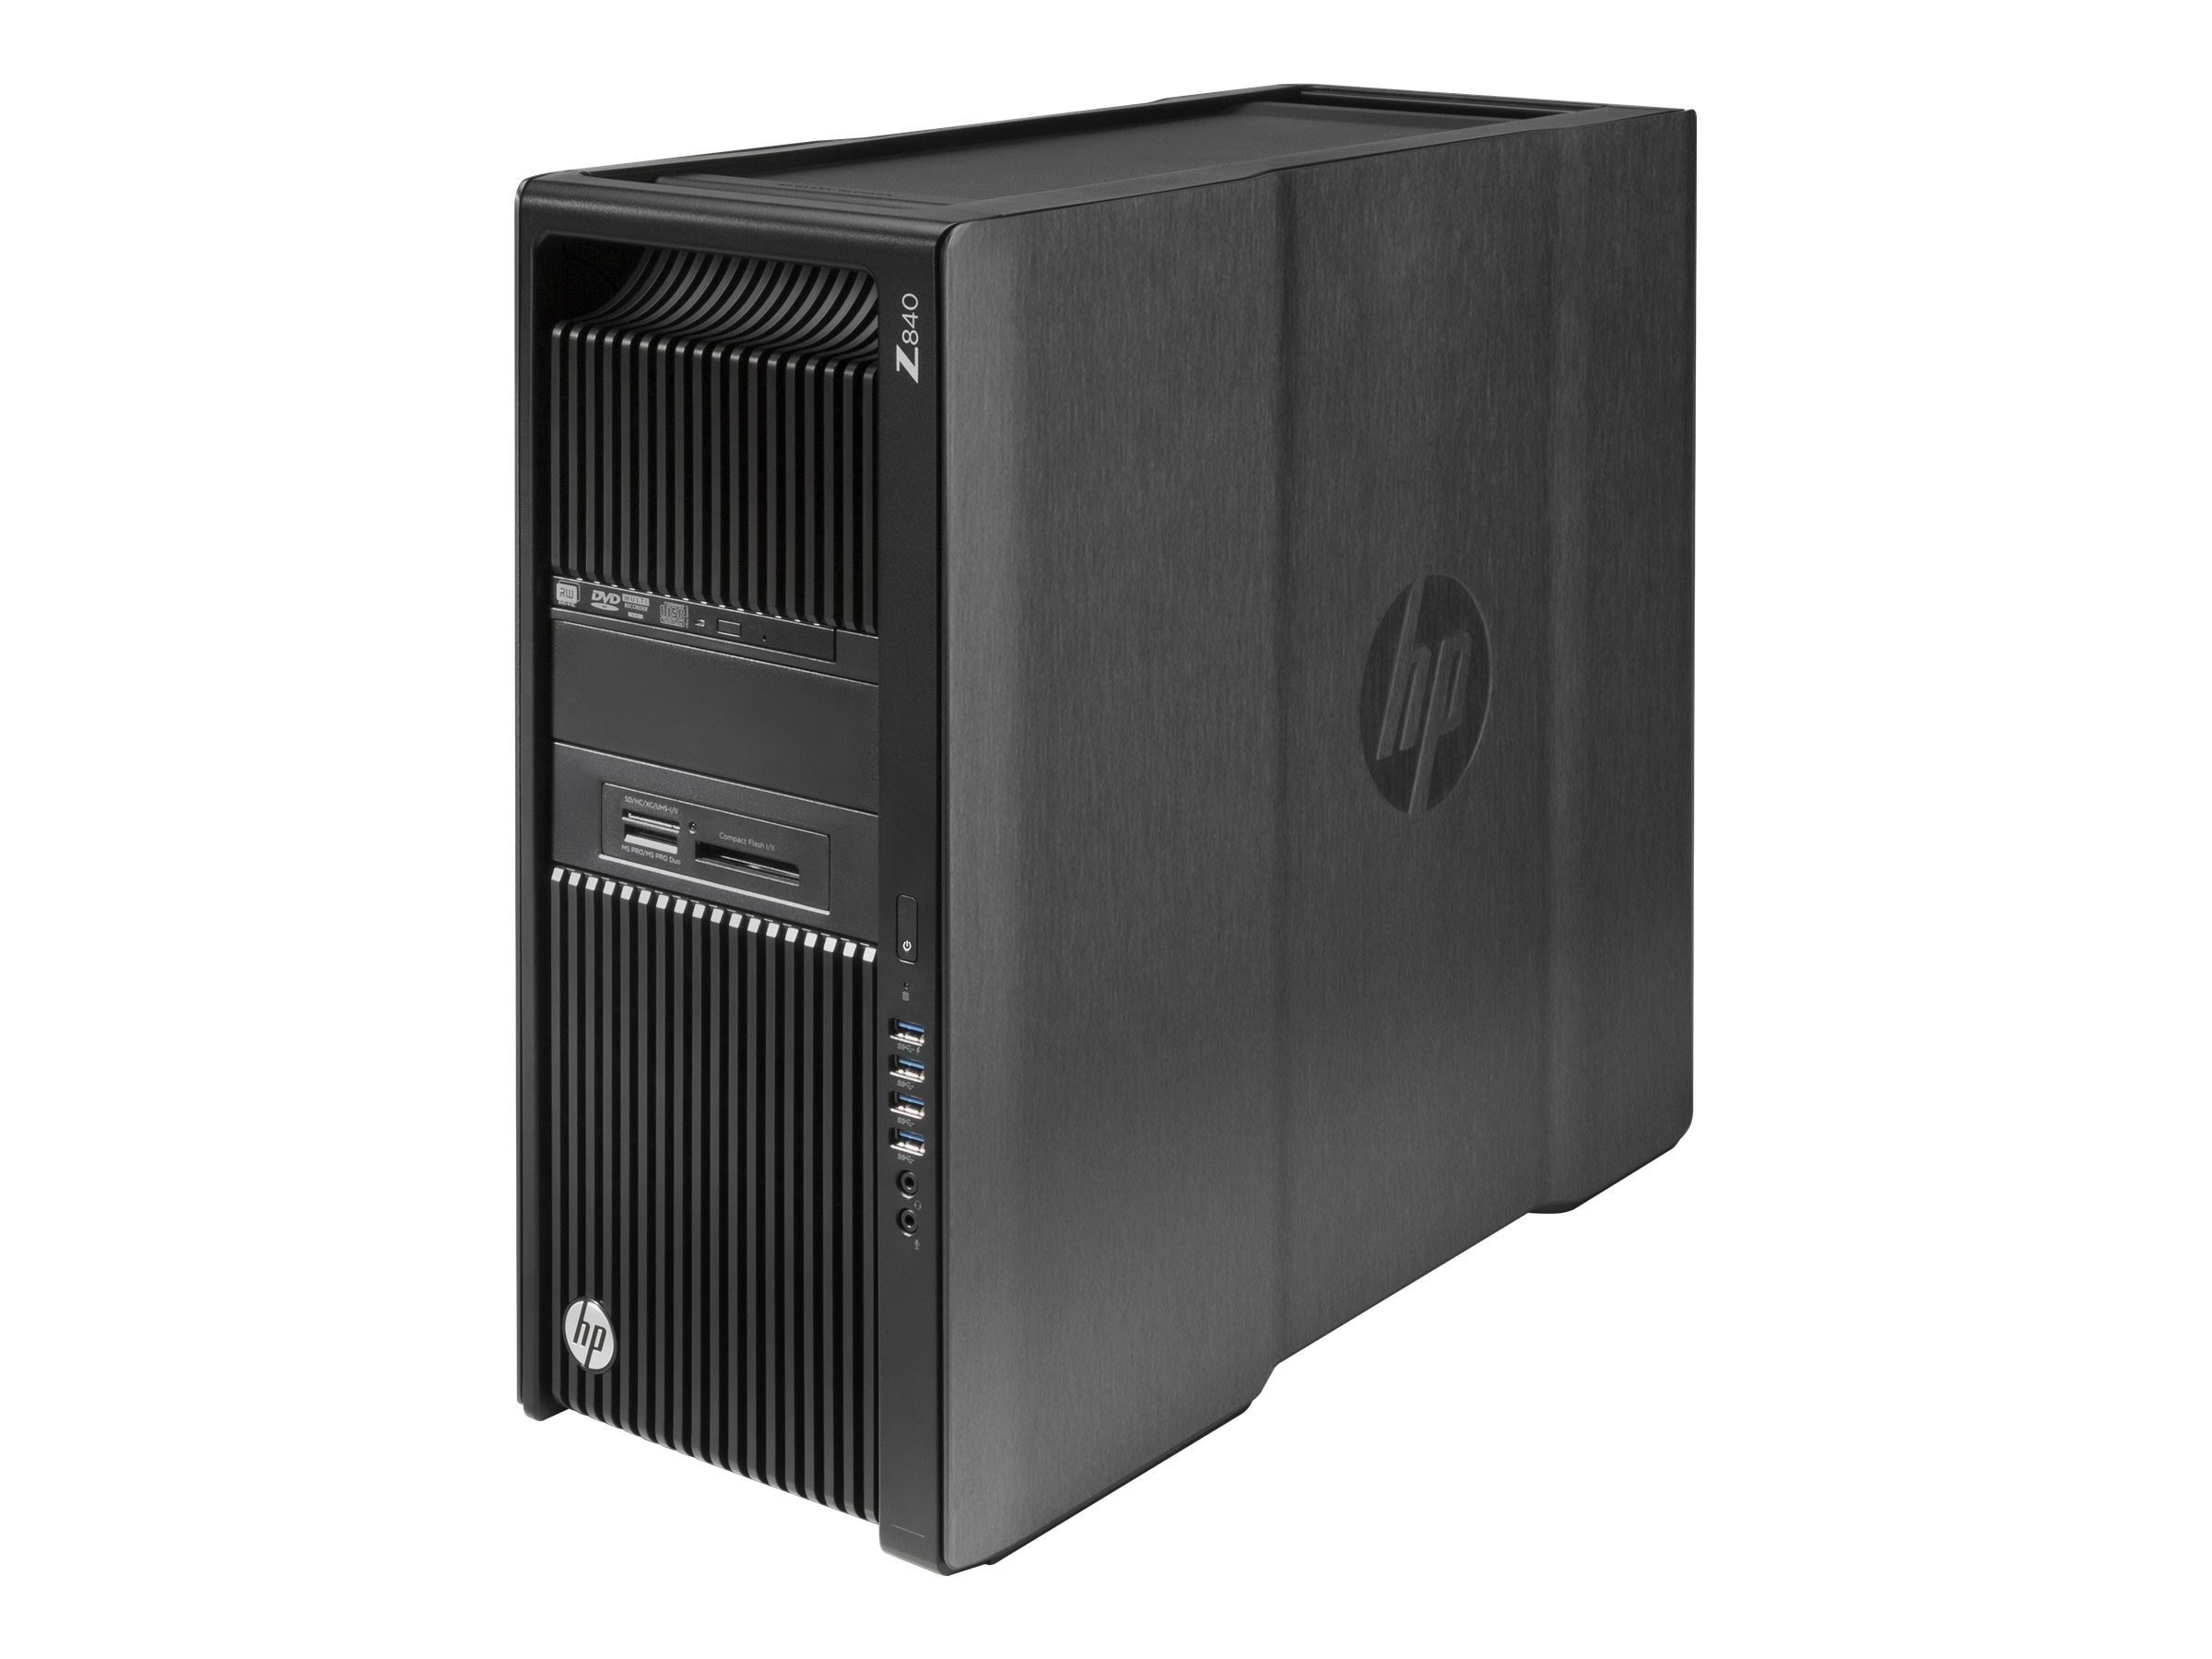 HP Z840 2.4GHz Xeon Microsoft Windows 7 Professional 64-bit Edition   Windows 8.1 Pro, P0C93UT#ABA, 25745893, Workstations